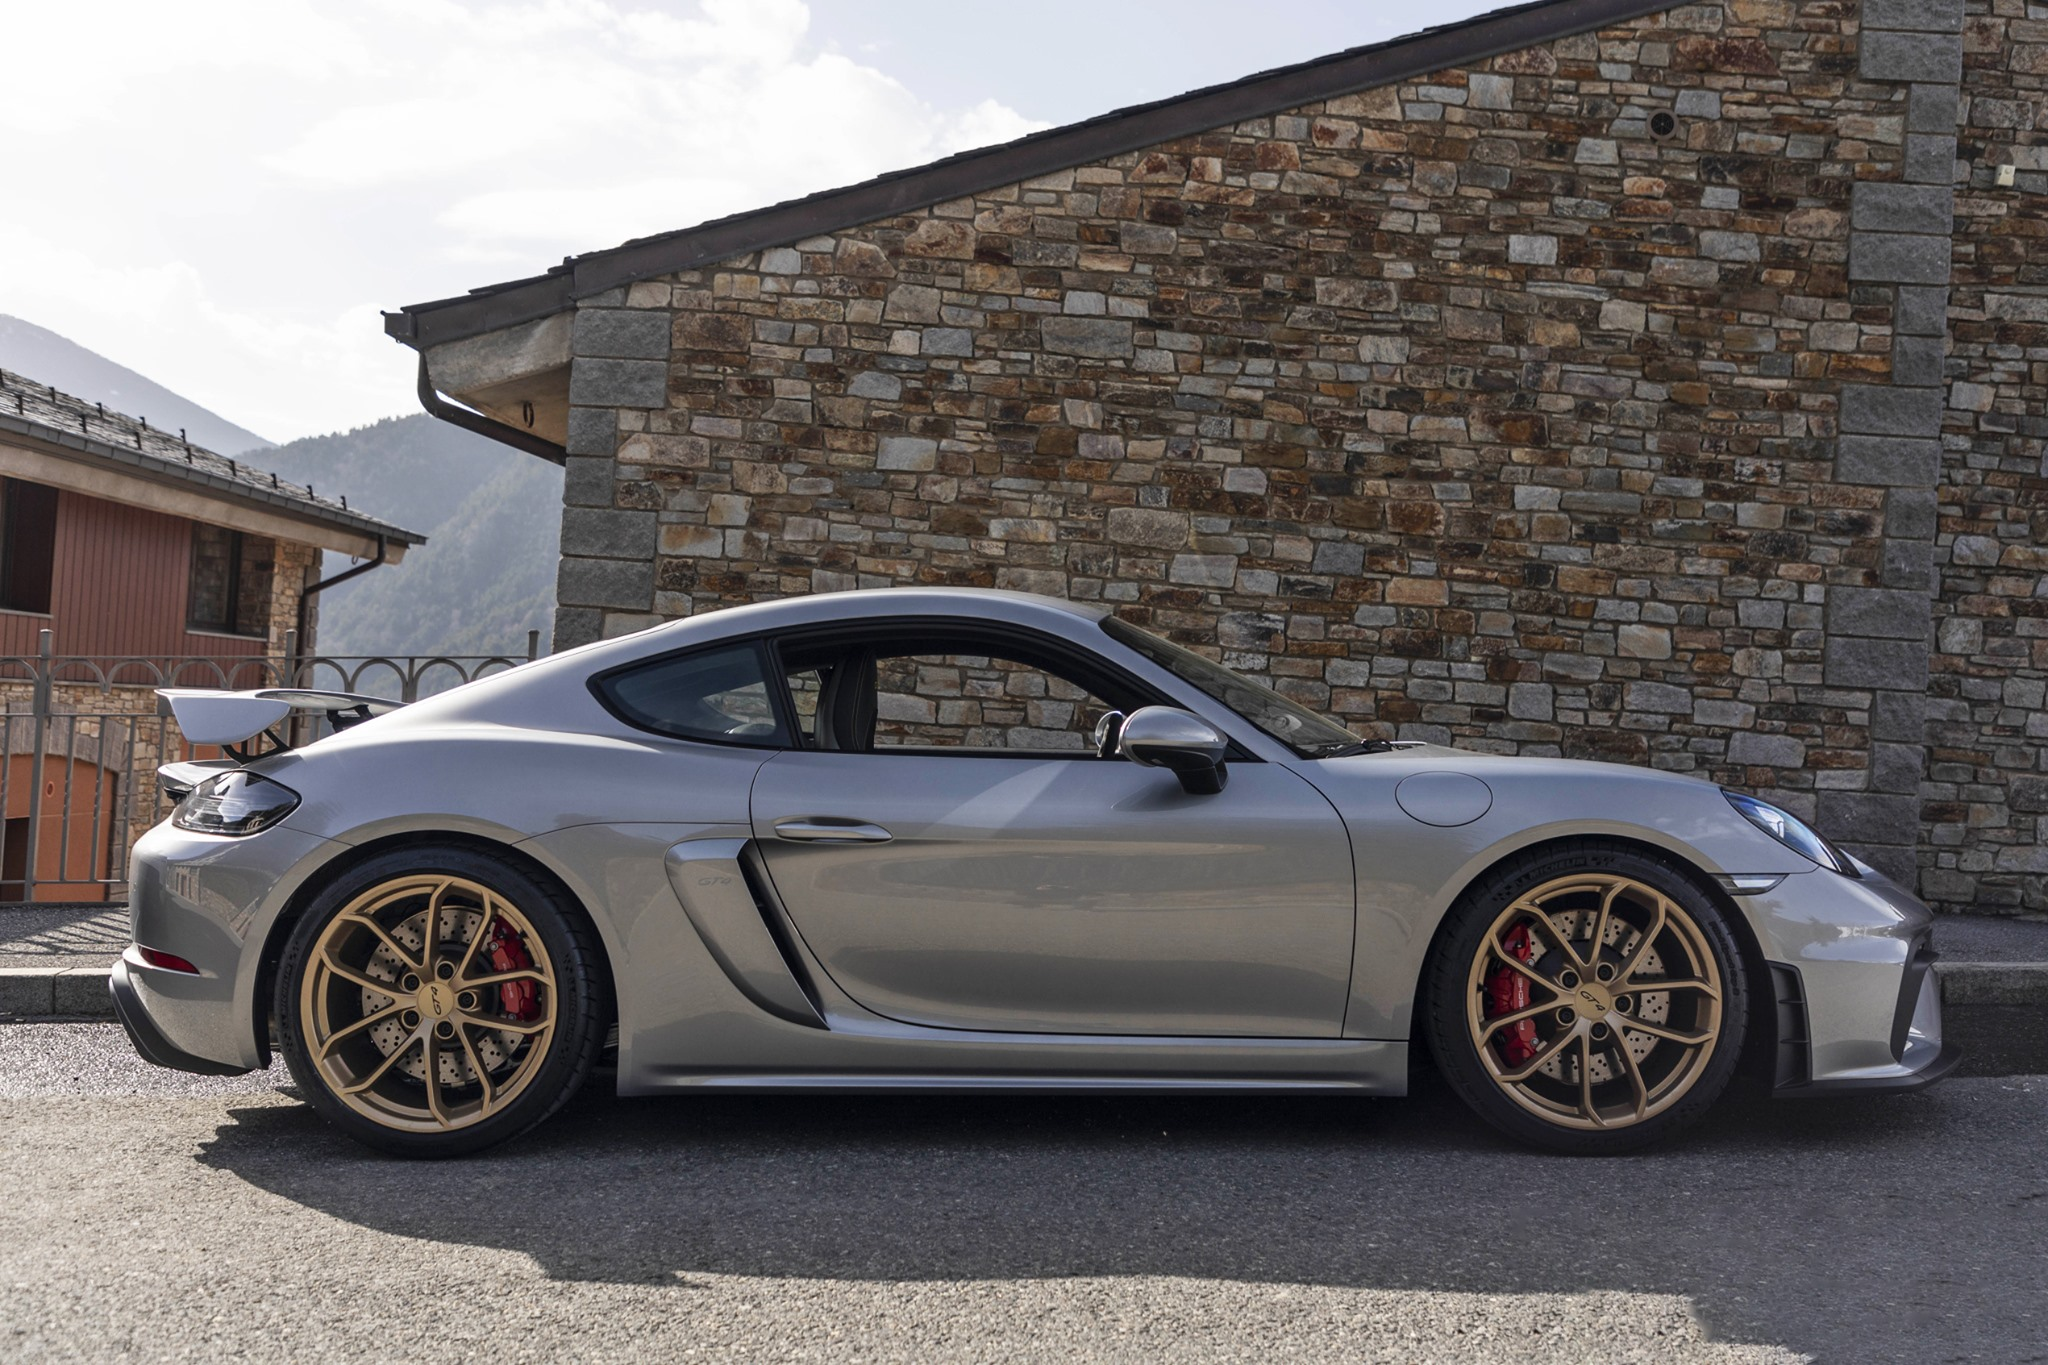 Grey Porsche Cayman GT4 reaches peak power at 7,600 rpm with 35 PS more than its 3.8-litre GT4 predecessor